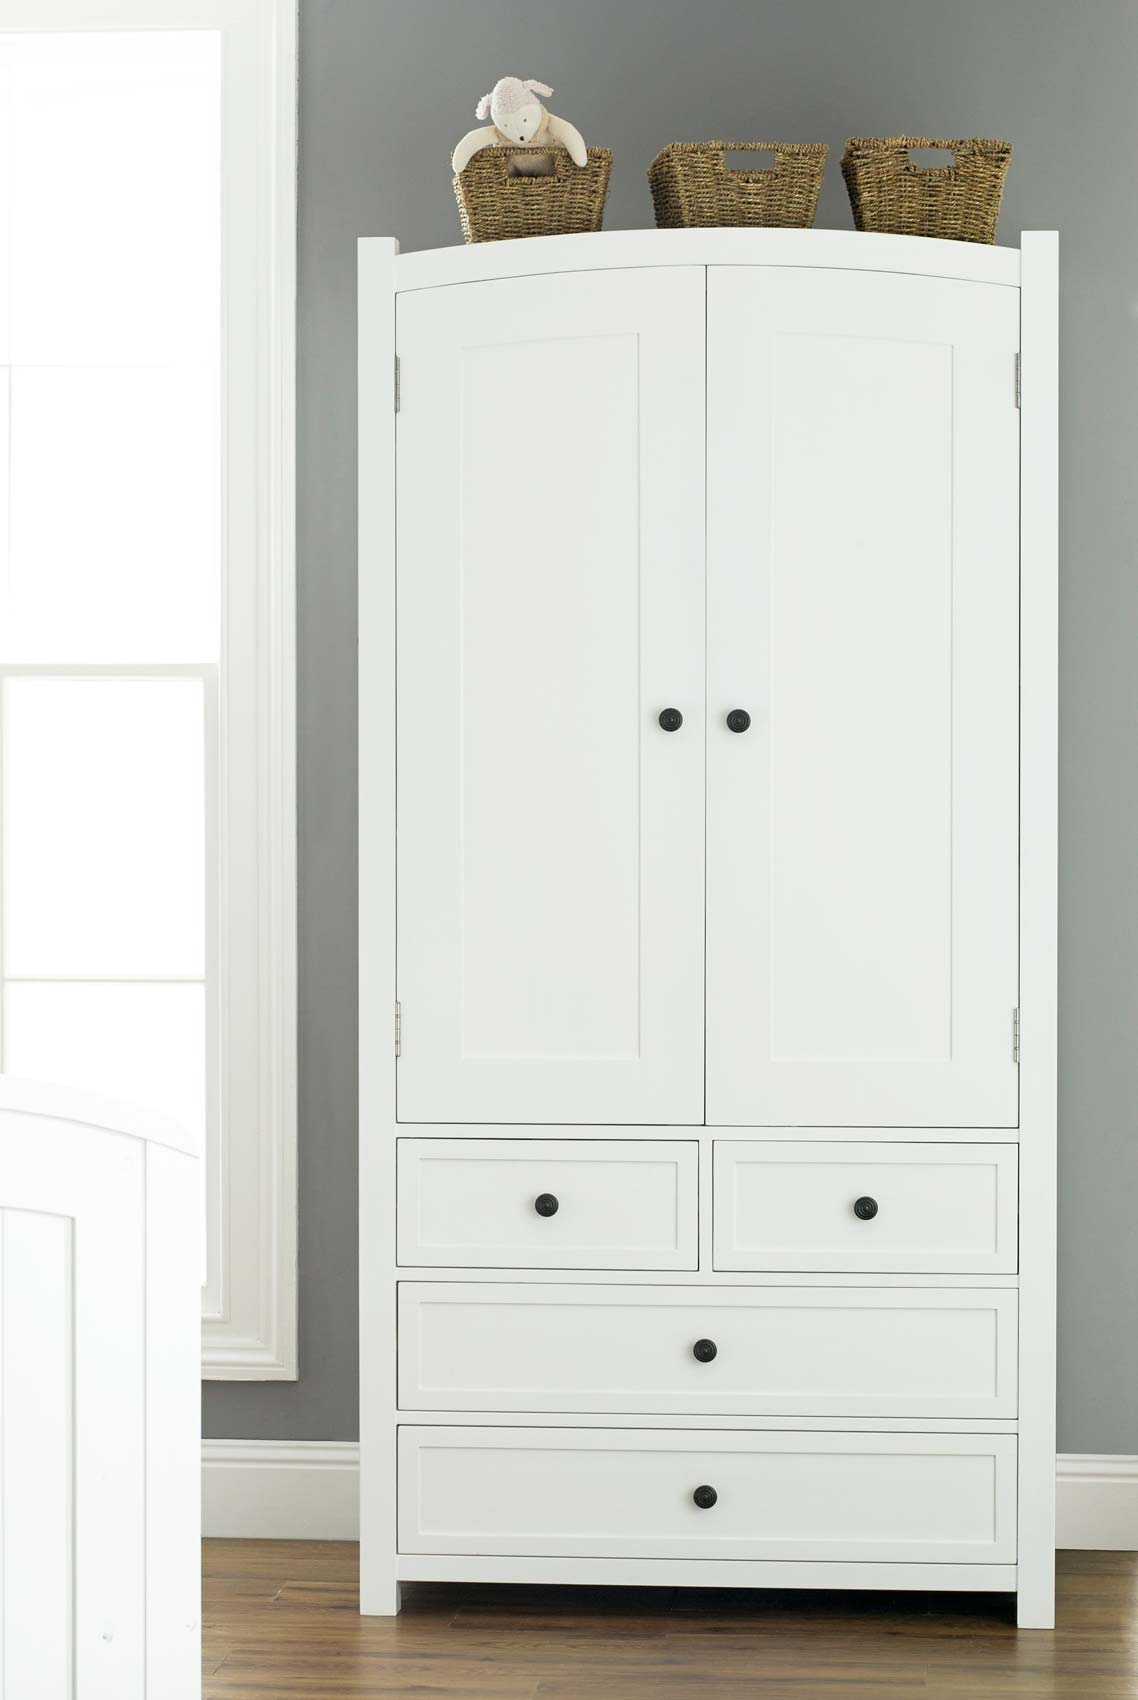 Get bold – a white wooden wardrobe with   drawers for your room